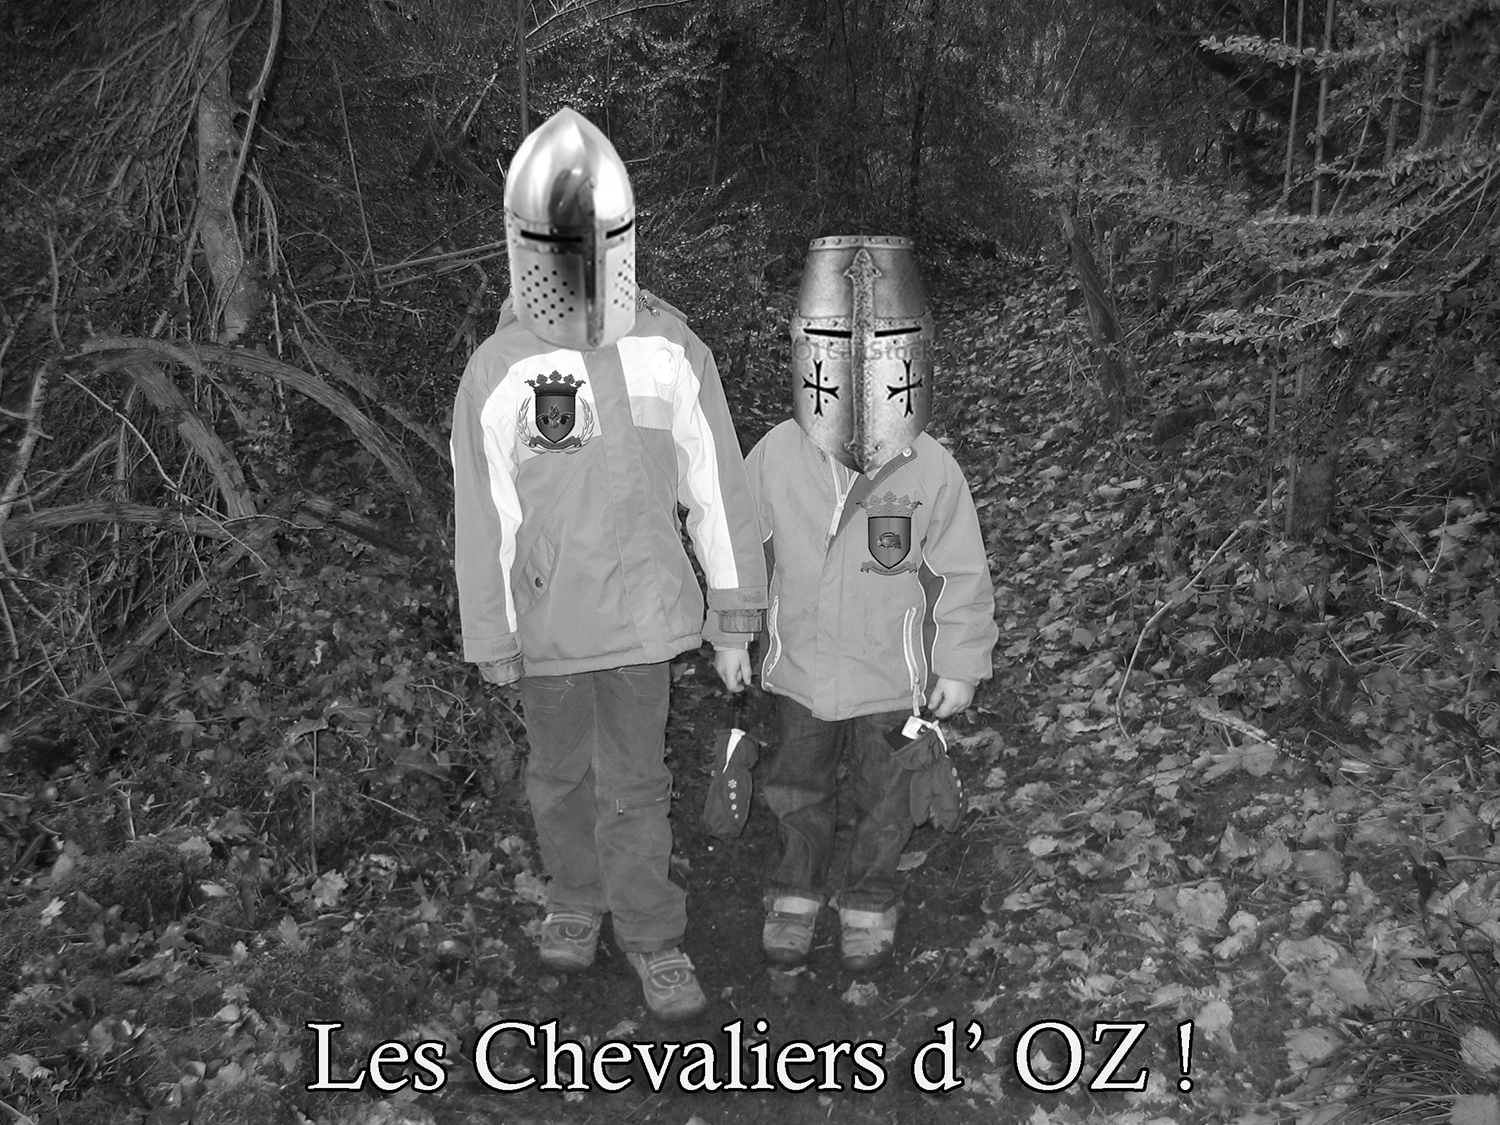 Chevaliers d'OZ NB.jpg